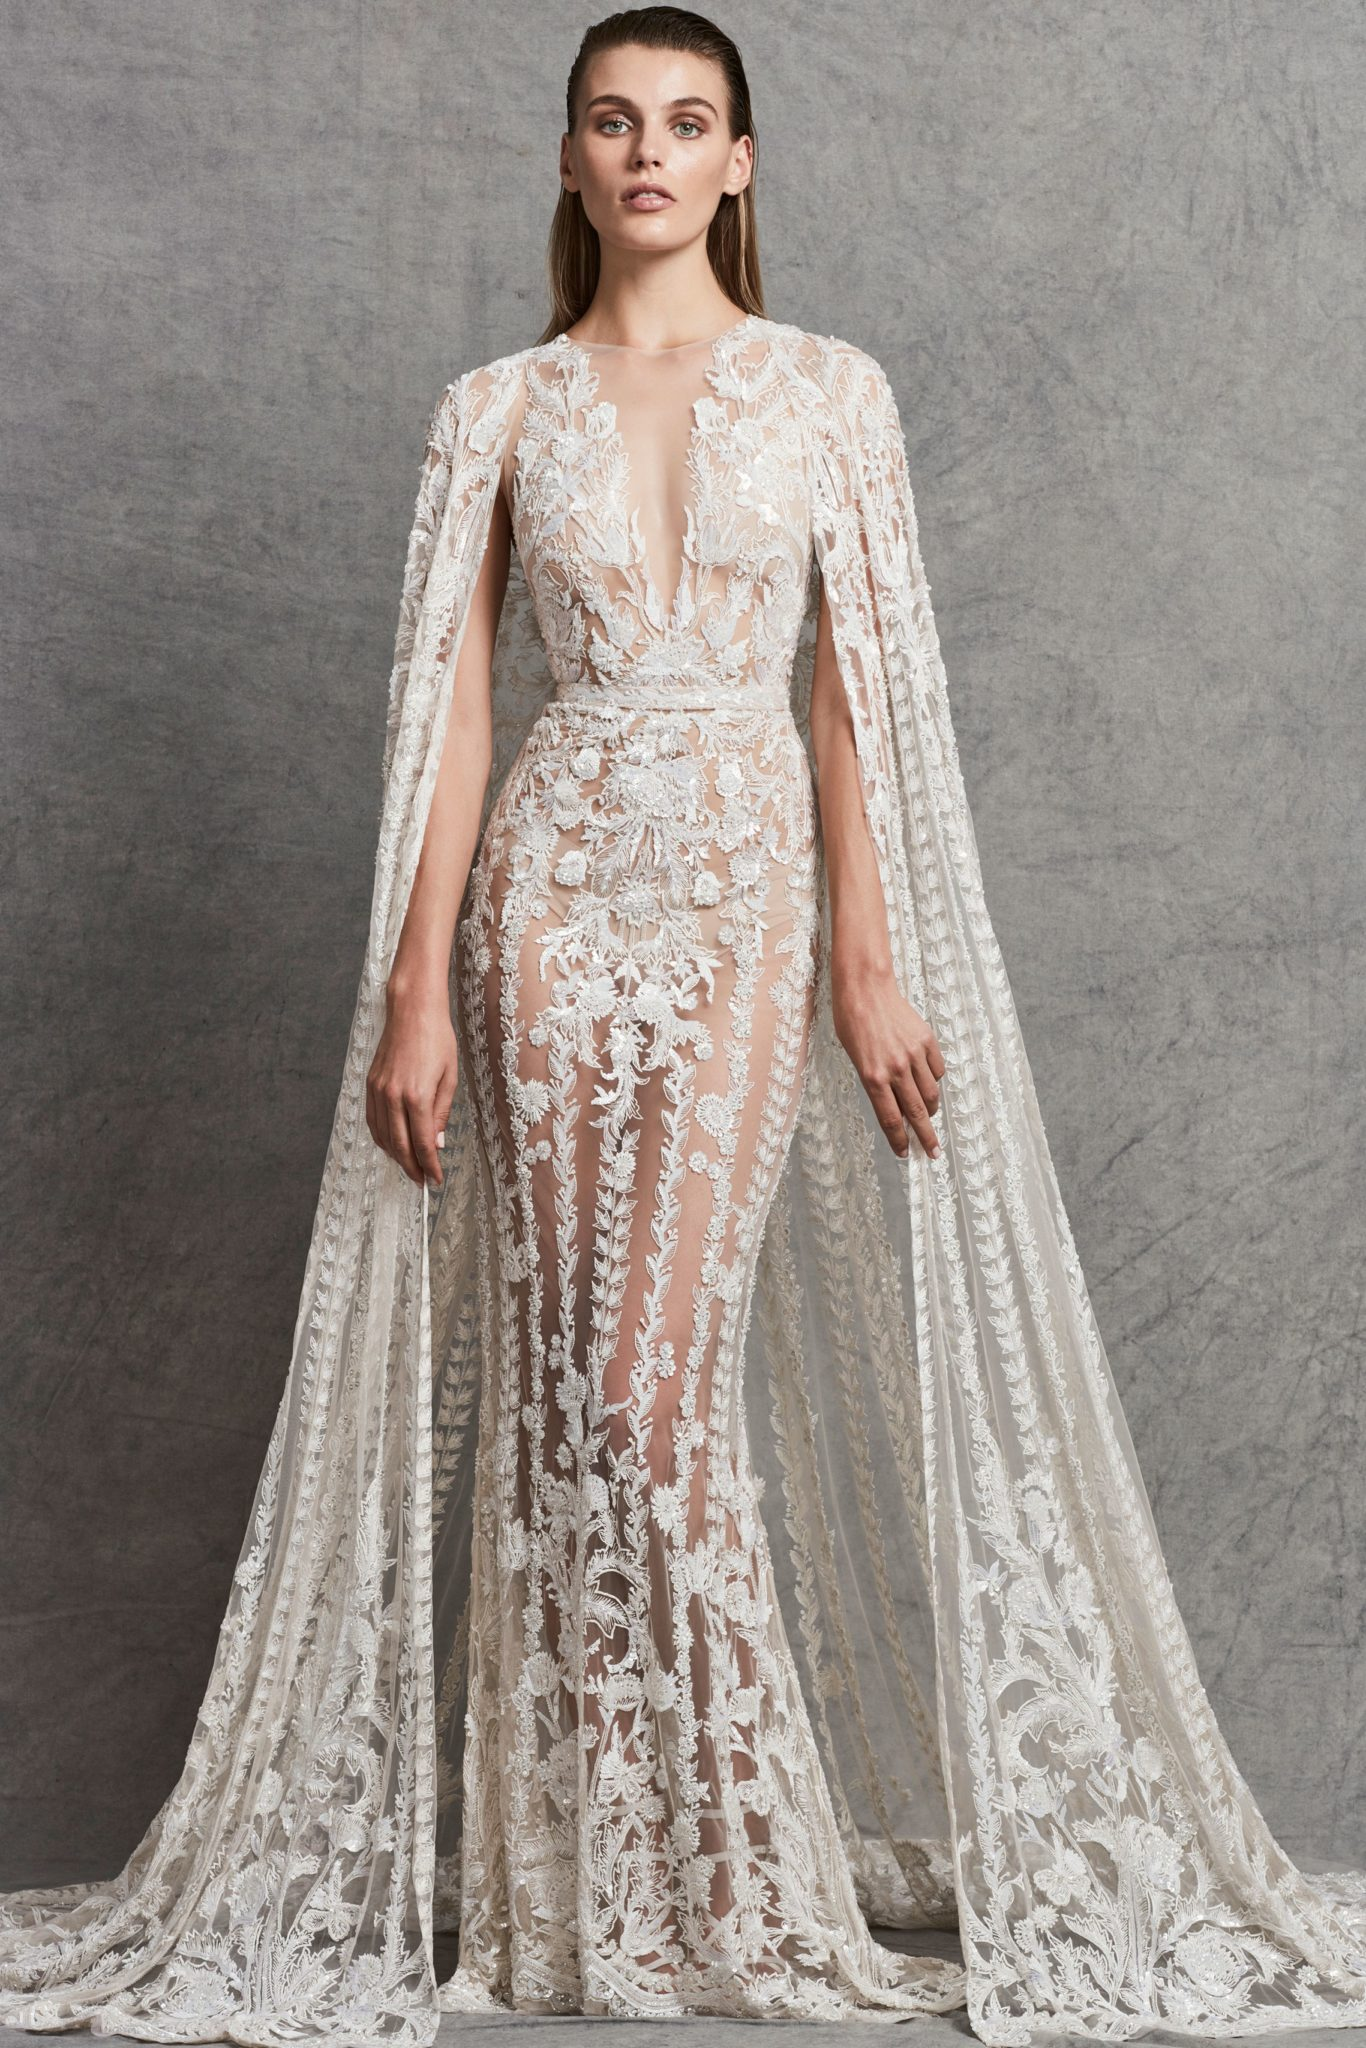 Zuhair Murad Resort 2019 Collection